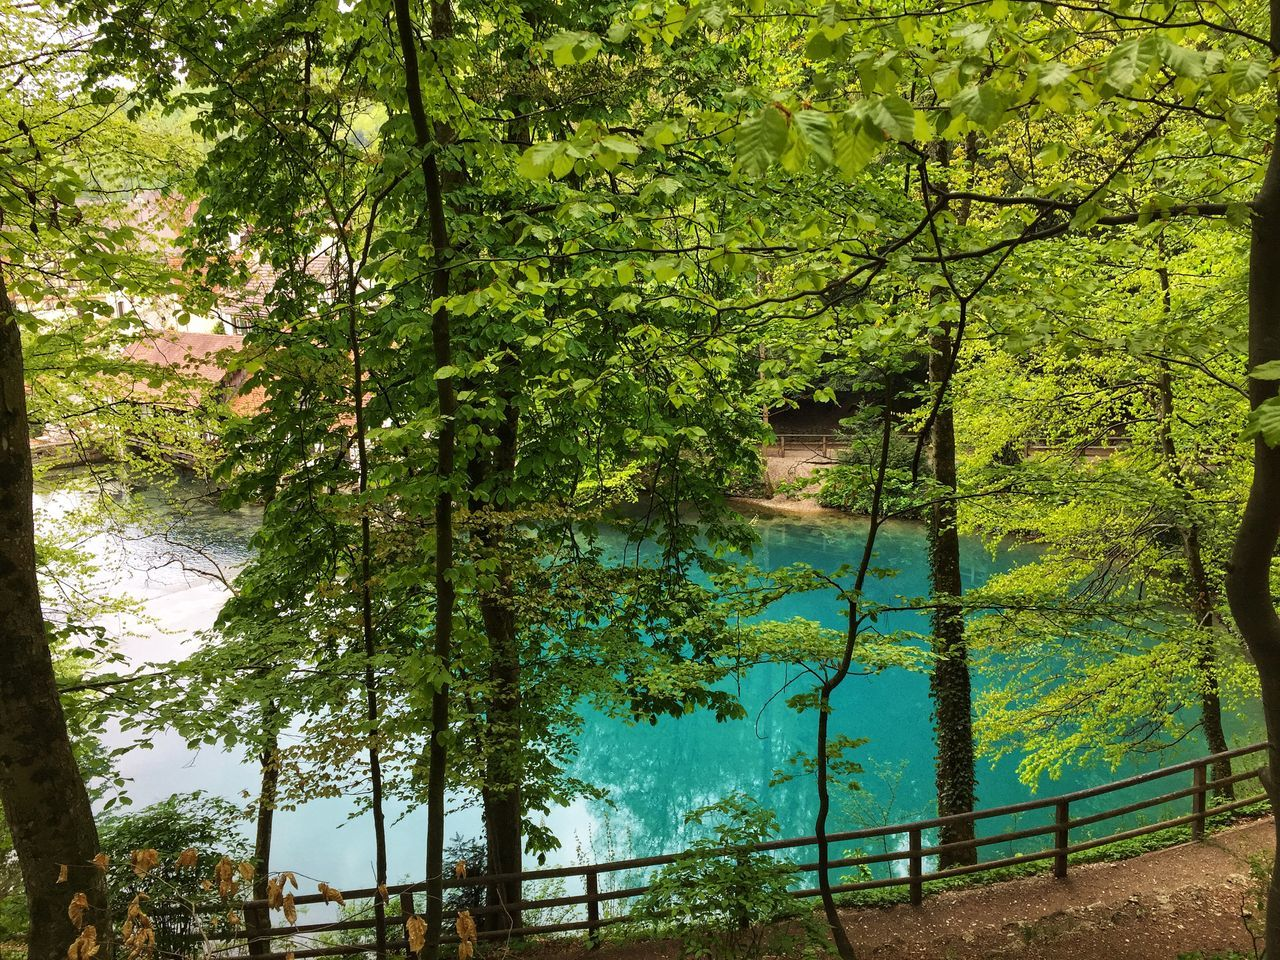 tree, plant, growth, beauty in nature, lake, water, tranquility, green color, nature, reflection, tranquil scene, forest, day, land, no people, branch, scenics - nature, outdoors, idyllic